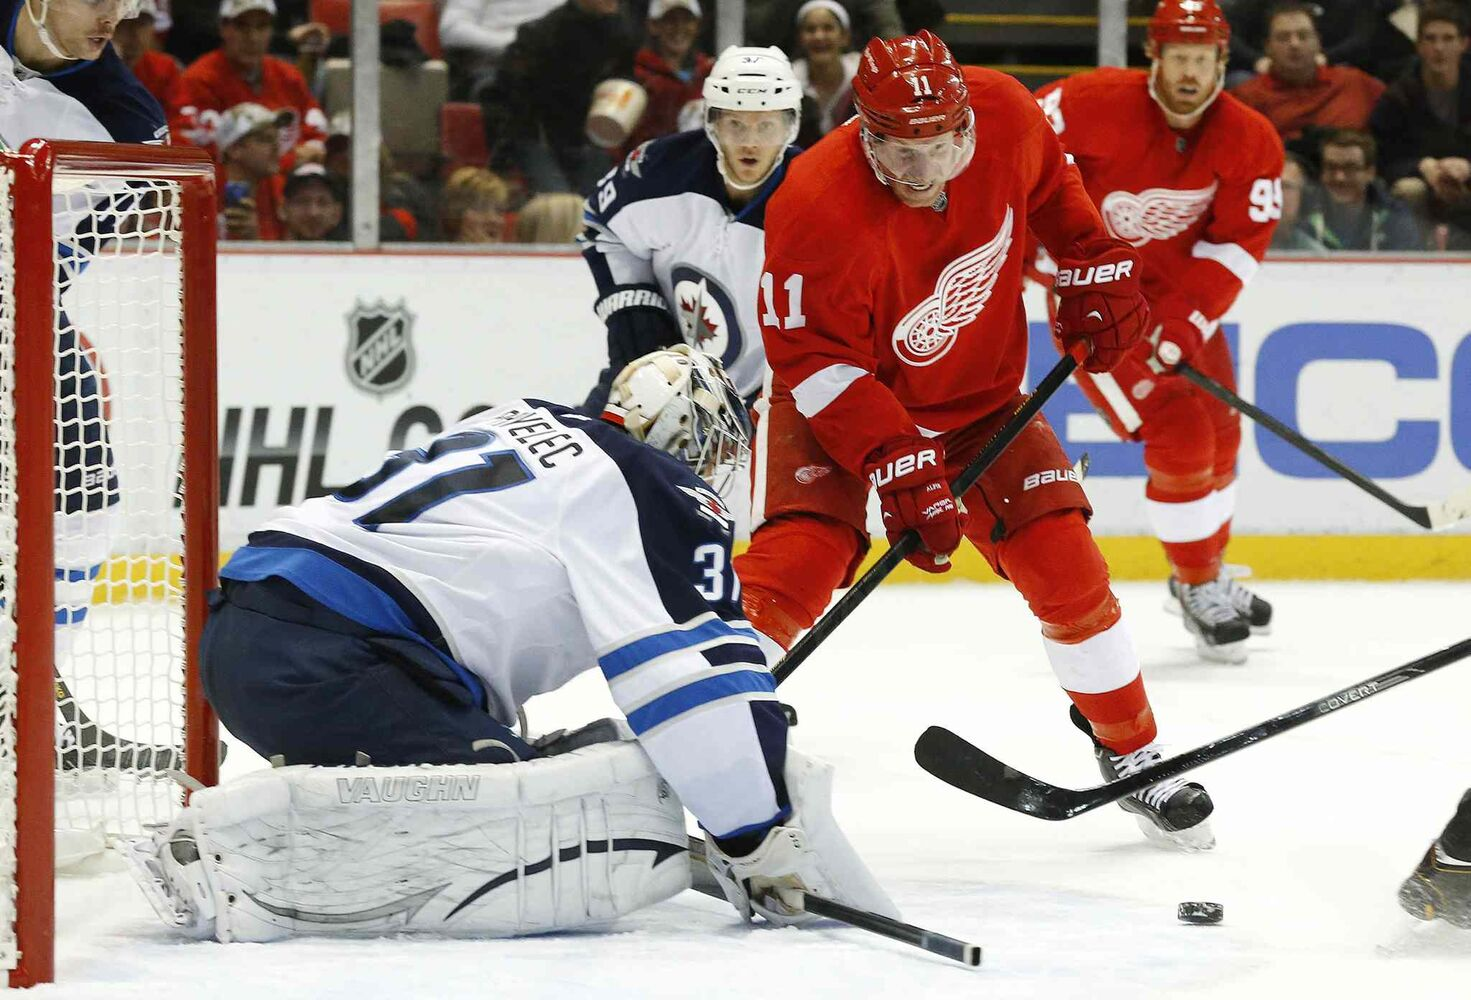 Winnipeg Jets goalie Ondrej Pavelec stops a shot from Detroit Red Wings forward Daniel Alfredsson during the second period.